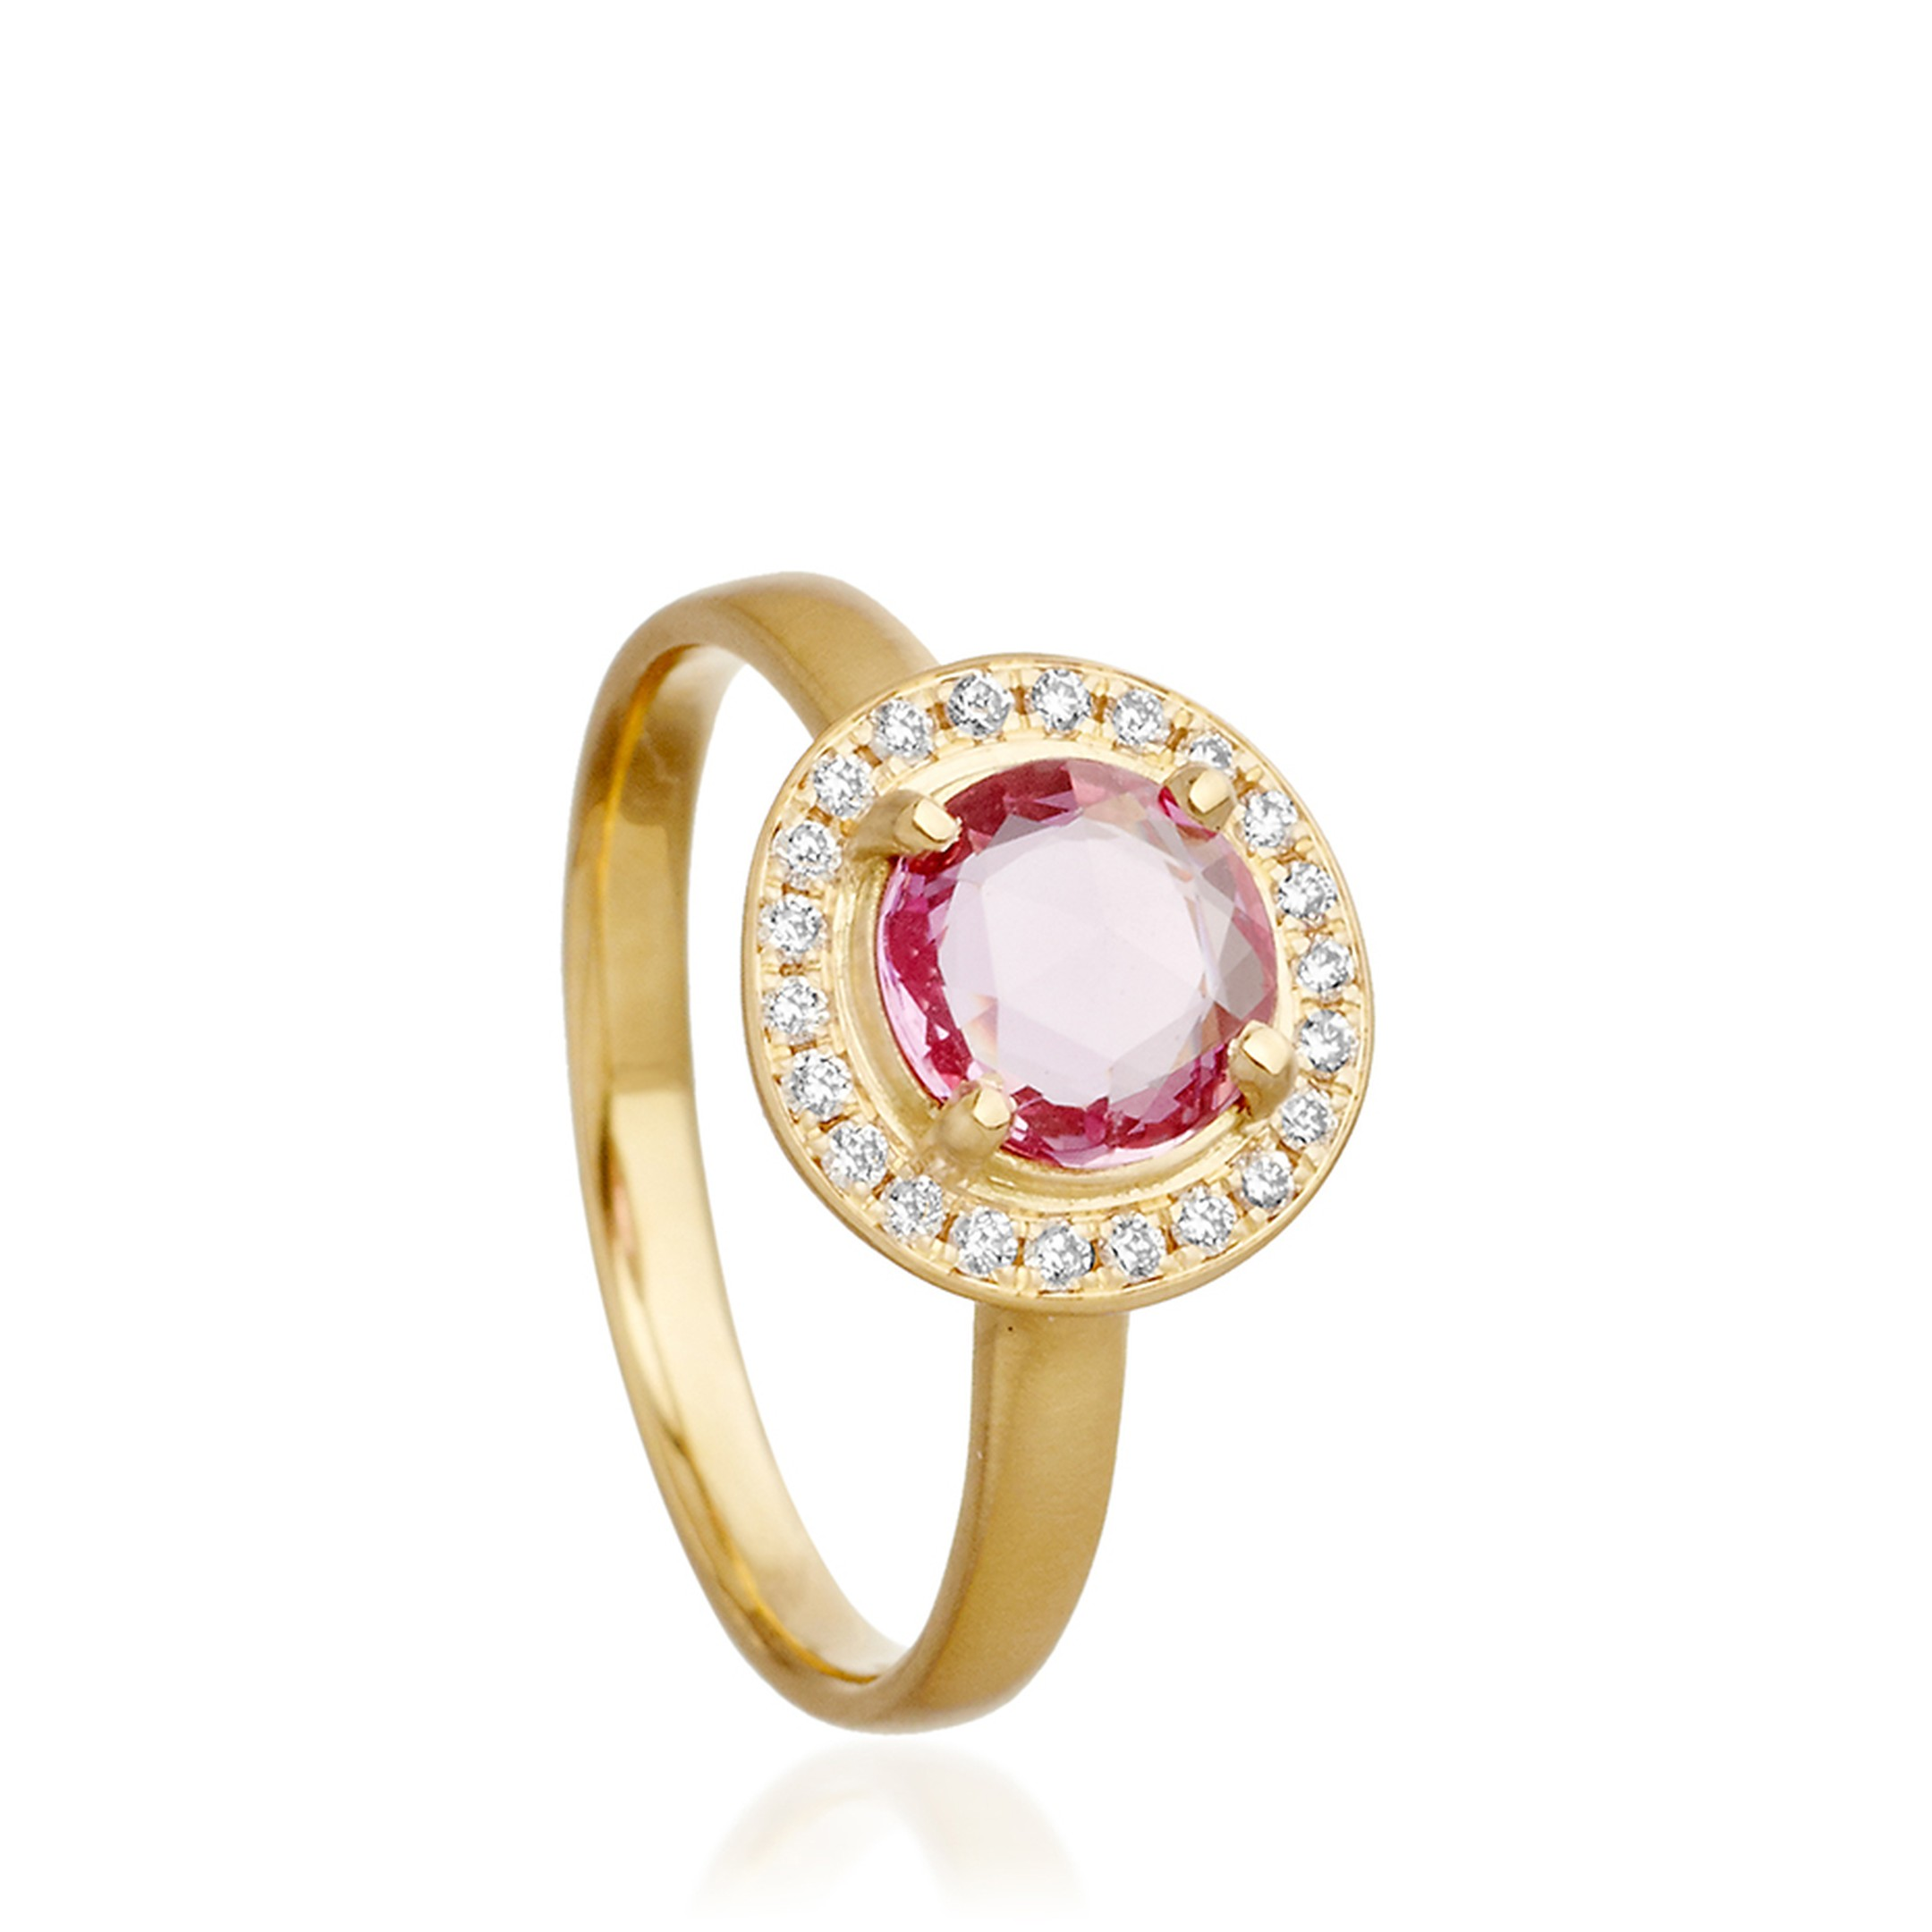 Anne Sportun sapphire engagement ring from Astley Clarke with a pink sapphire centre stone set in gold and surrounded by a circle of channel-set white diamonds (£2,700).